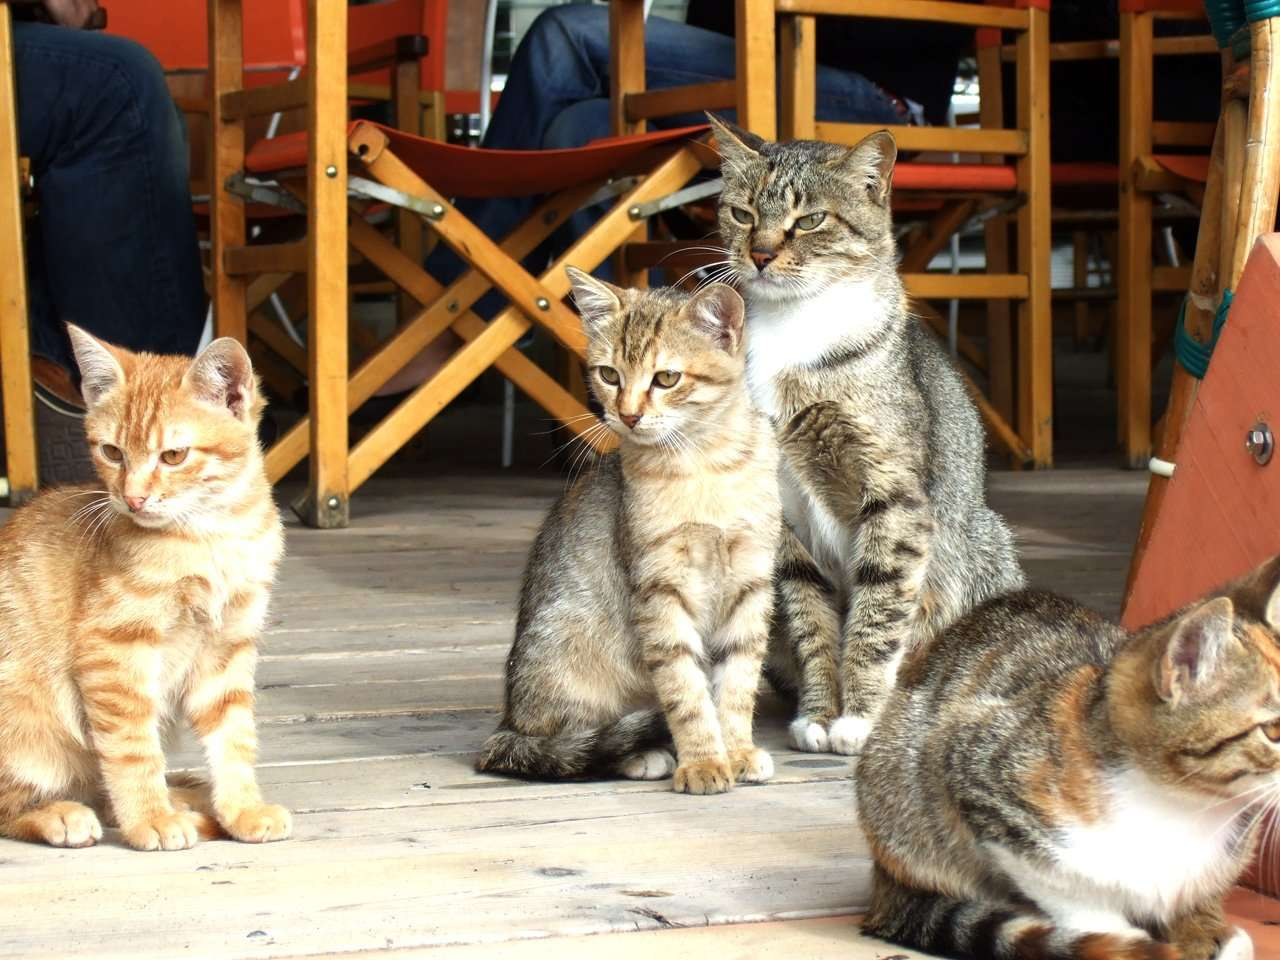 Have you noticed that cats in Italy seem to be everywhere?